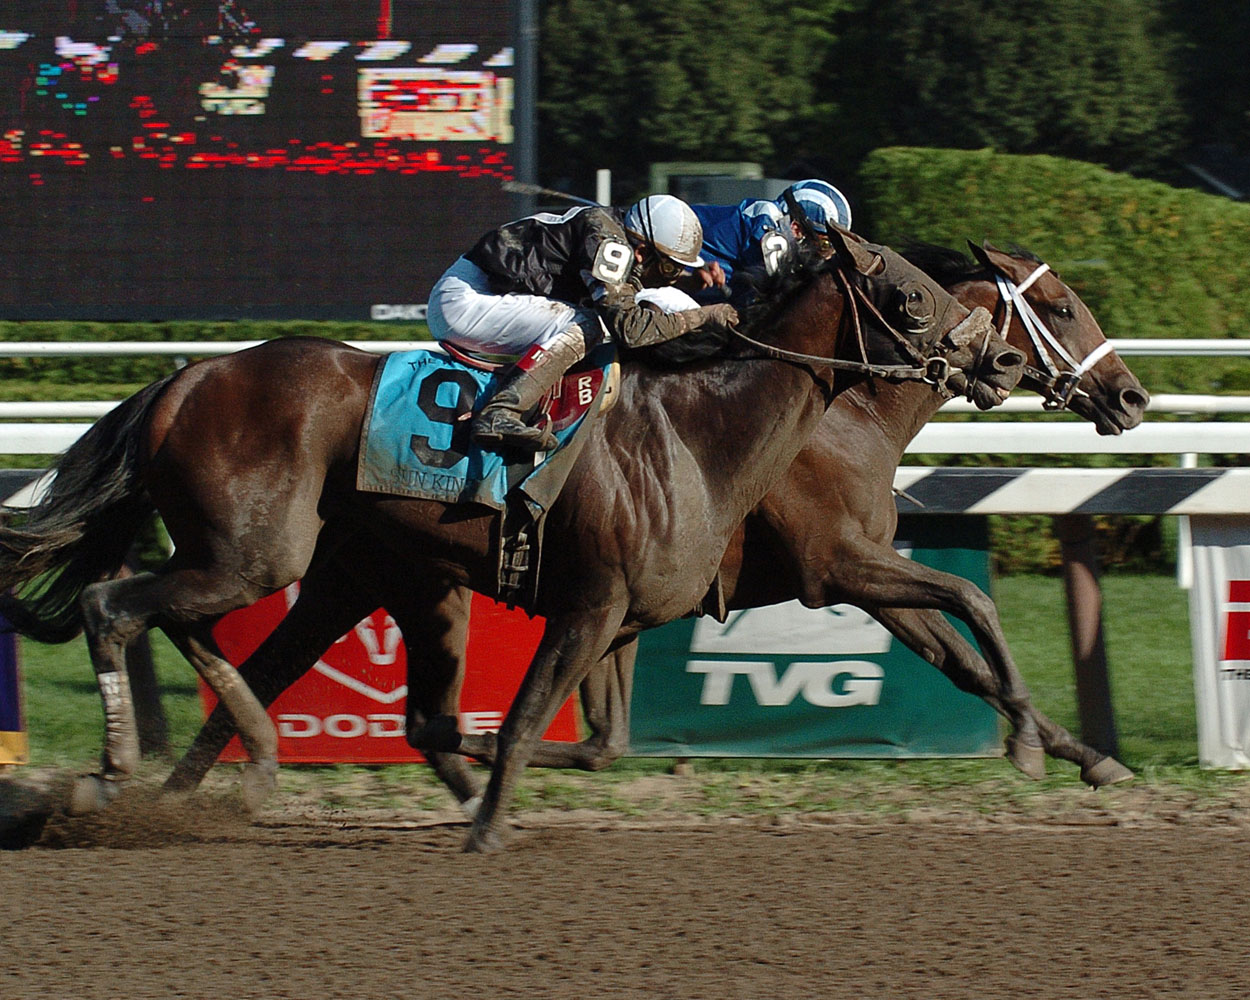 Invasor (Fernando Jara up) at the finish, winning the 2006 Whitney by a nose (NYRA)